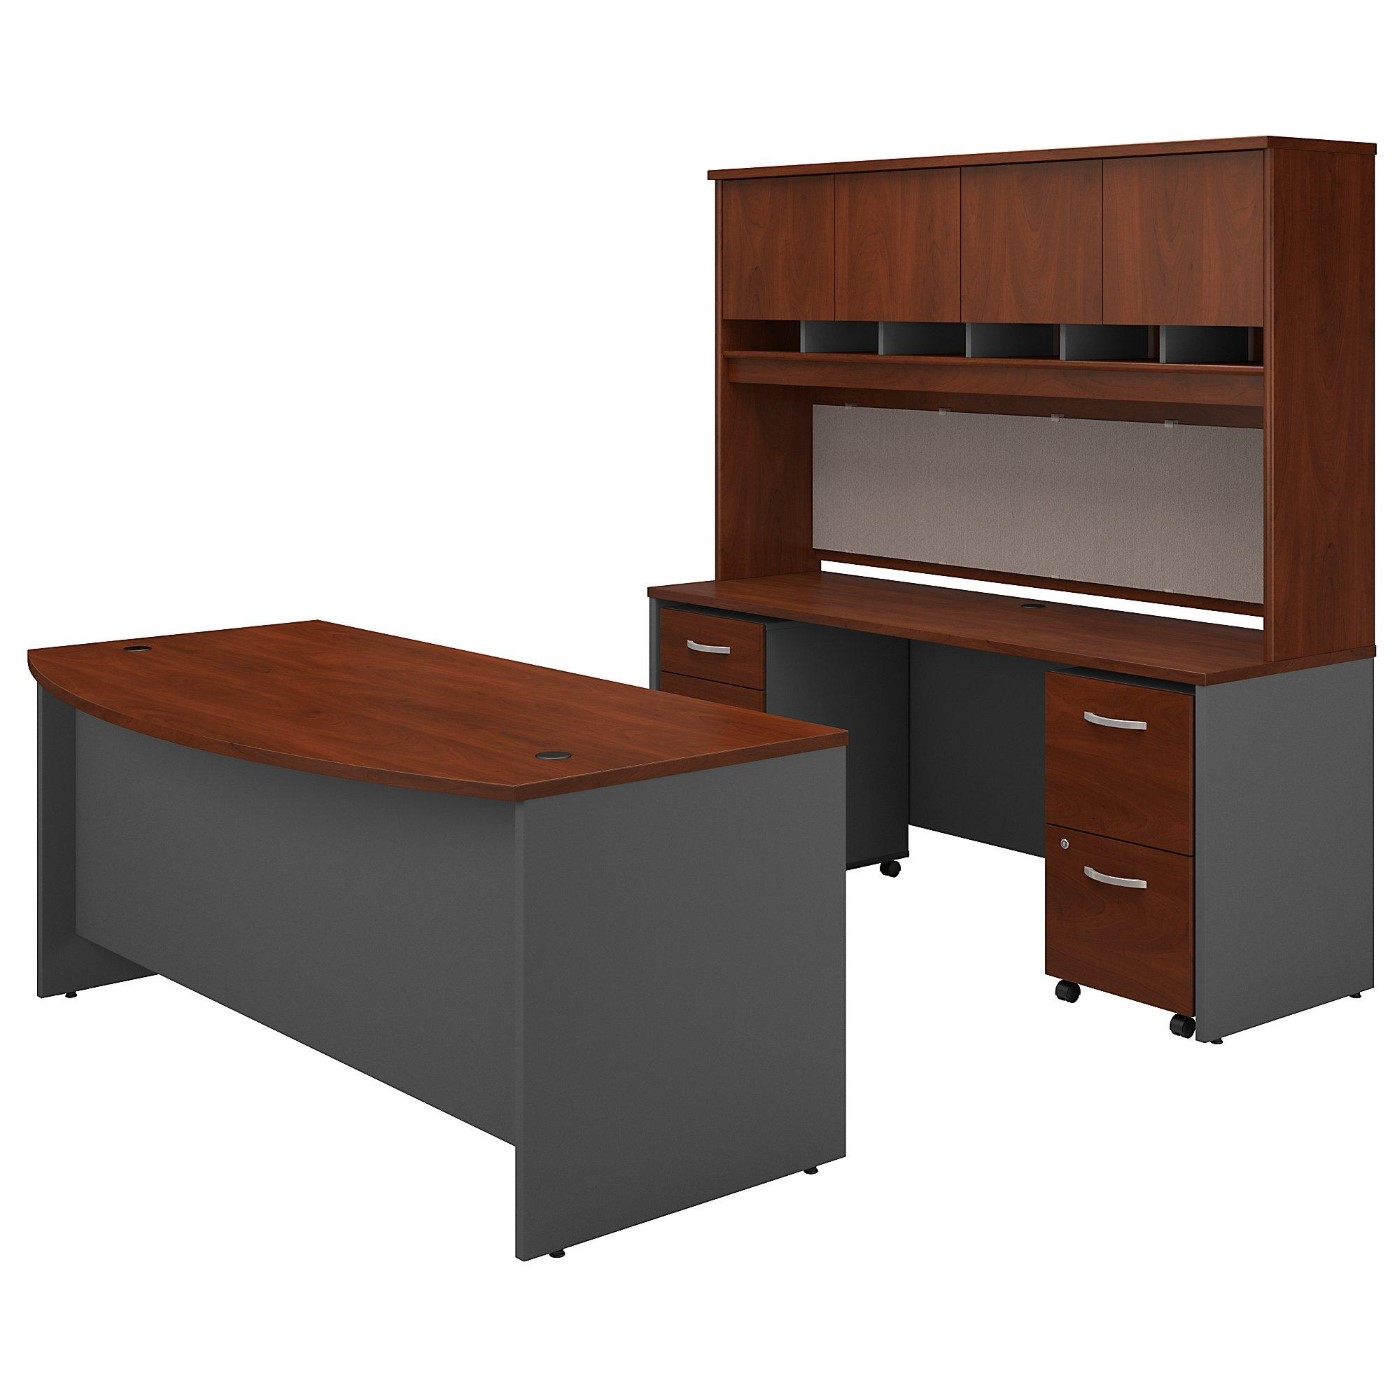 BUSH BUSINESS FURNITURE SERIES C BOW FRONT DESK WITH CREDENZA, HUTCH AND STORAGE. FREE SHIPPING</font></b></font>&#x1F384<font color=red><b>ERGONOMICHOME HOLIDAY SALE - ENDS DEC. 17, 2019</b></font>&#x1F384